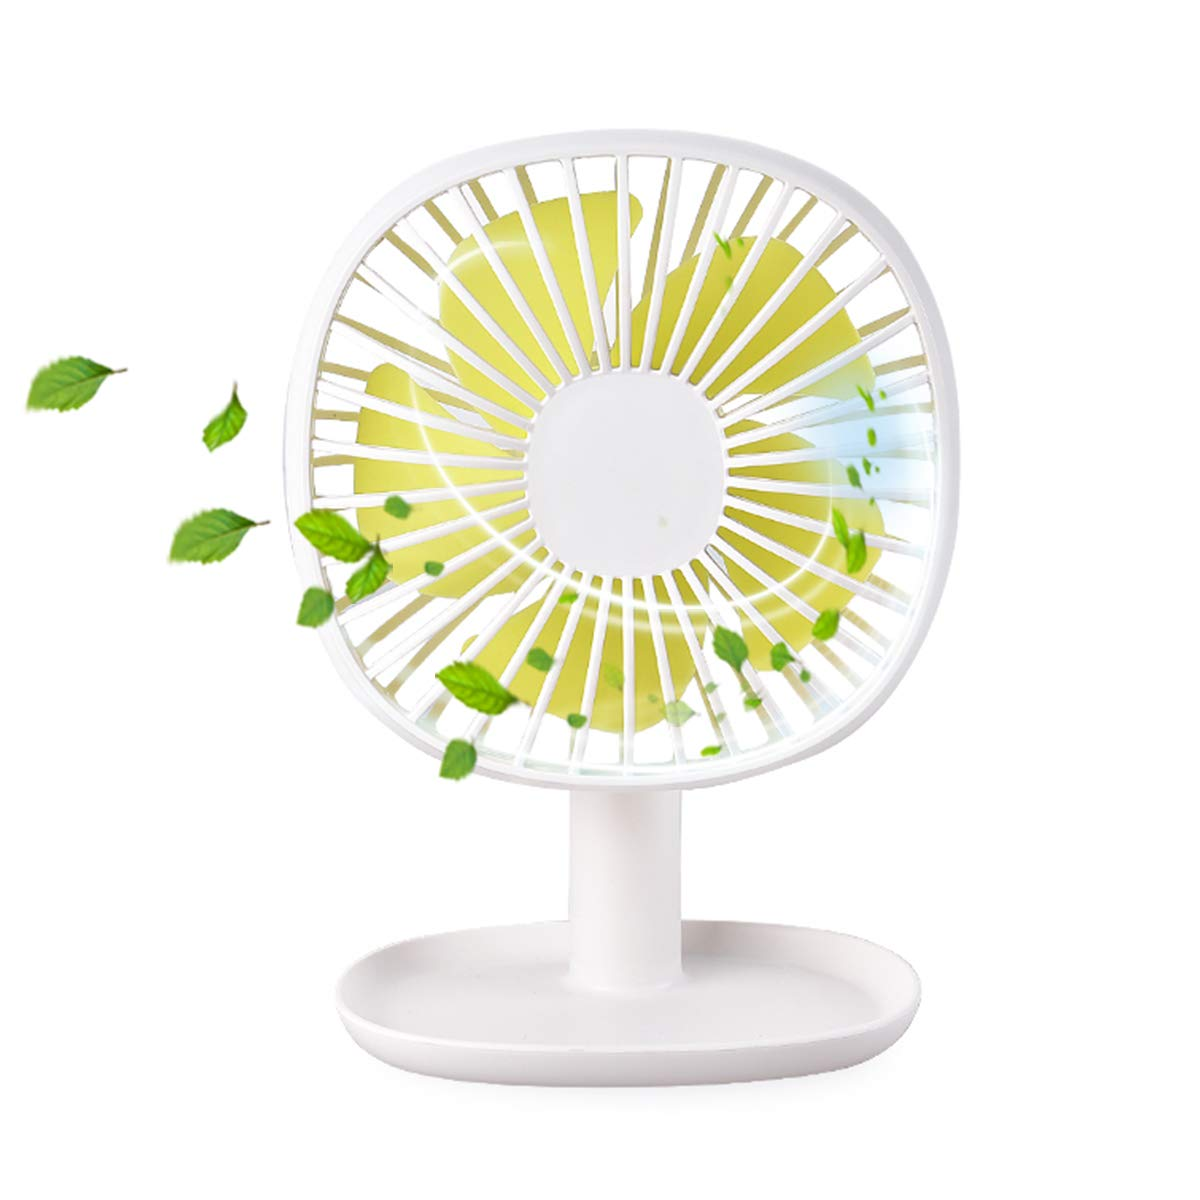 Small Desk Fan, Table Standing Personal Fan with Rechargeable Battery Operated High Velocity 3 Speed, Ultra Quiet, 60 Up Down, Summer Gifts for Office Household Outdoor Sport Traveling Camping